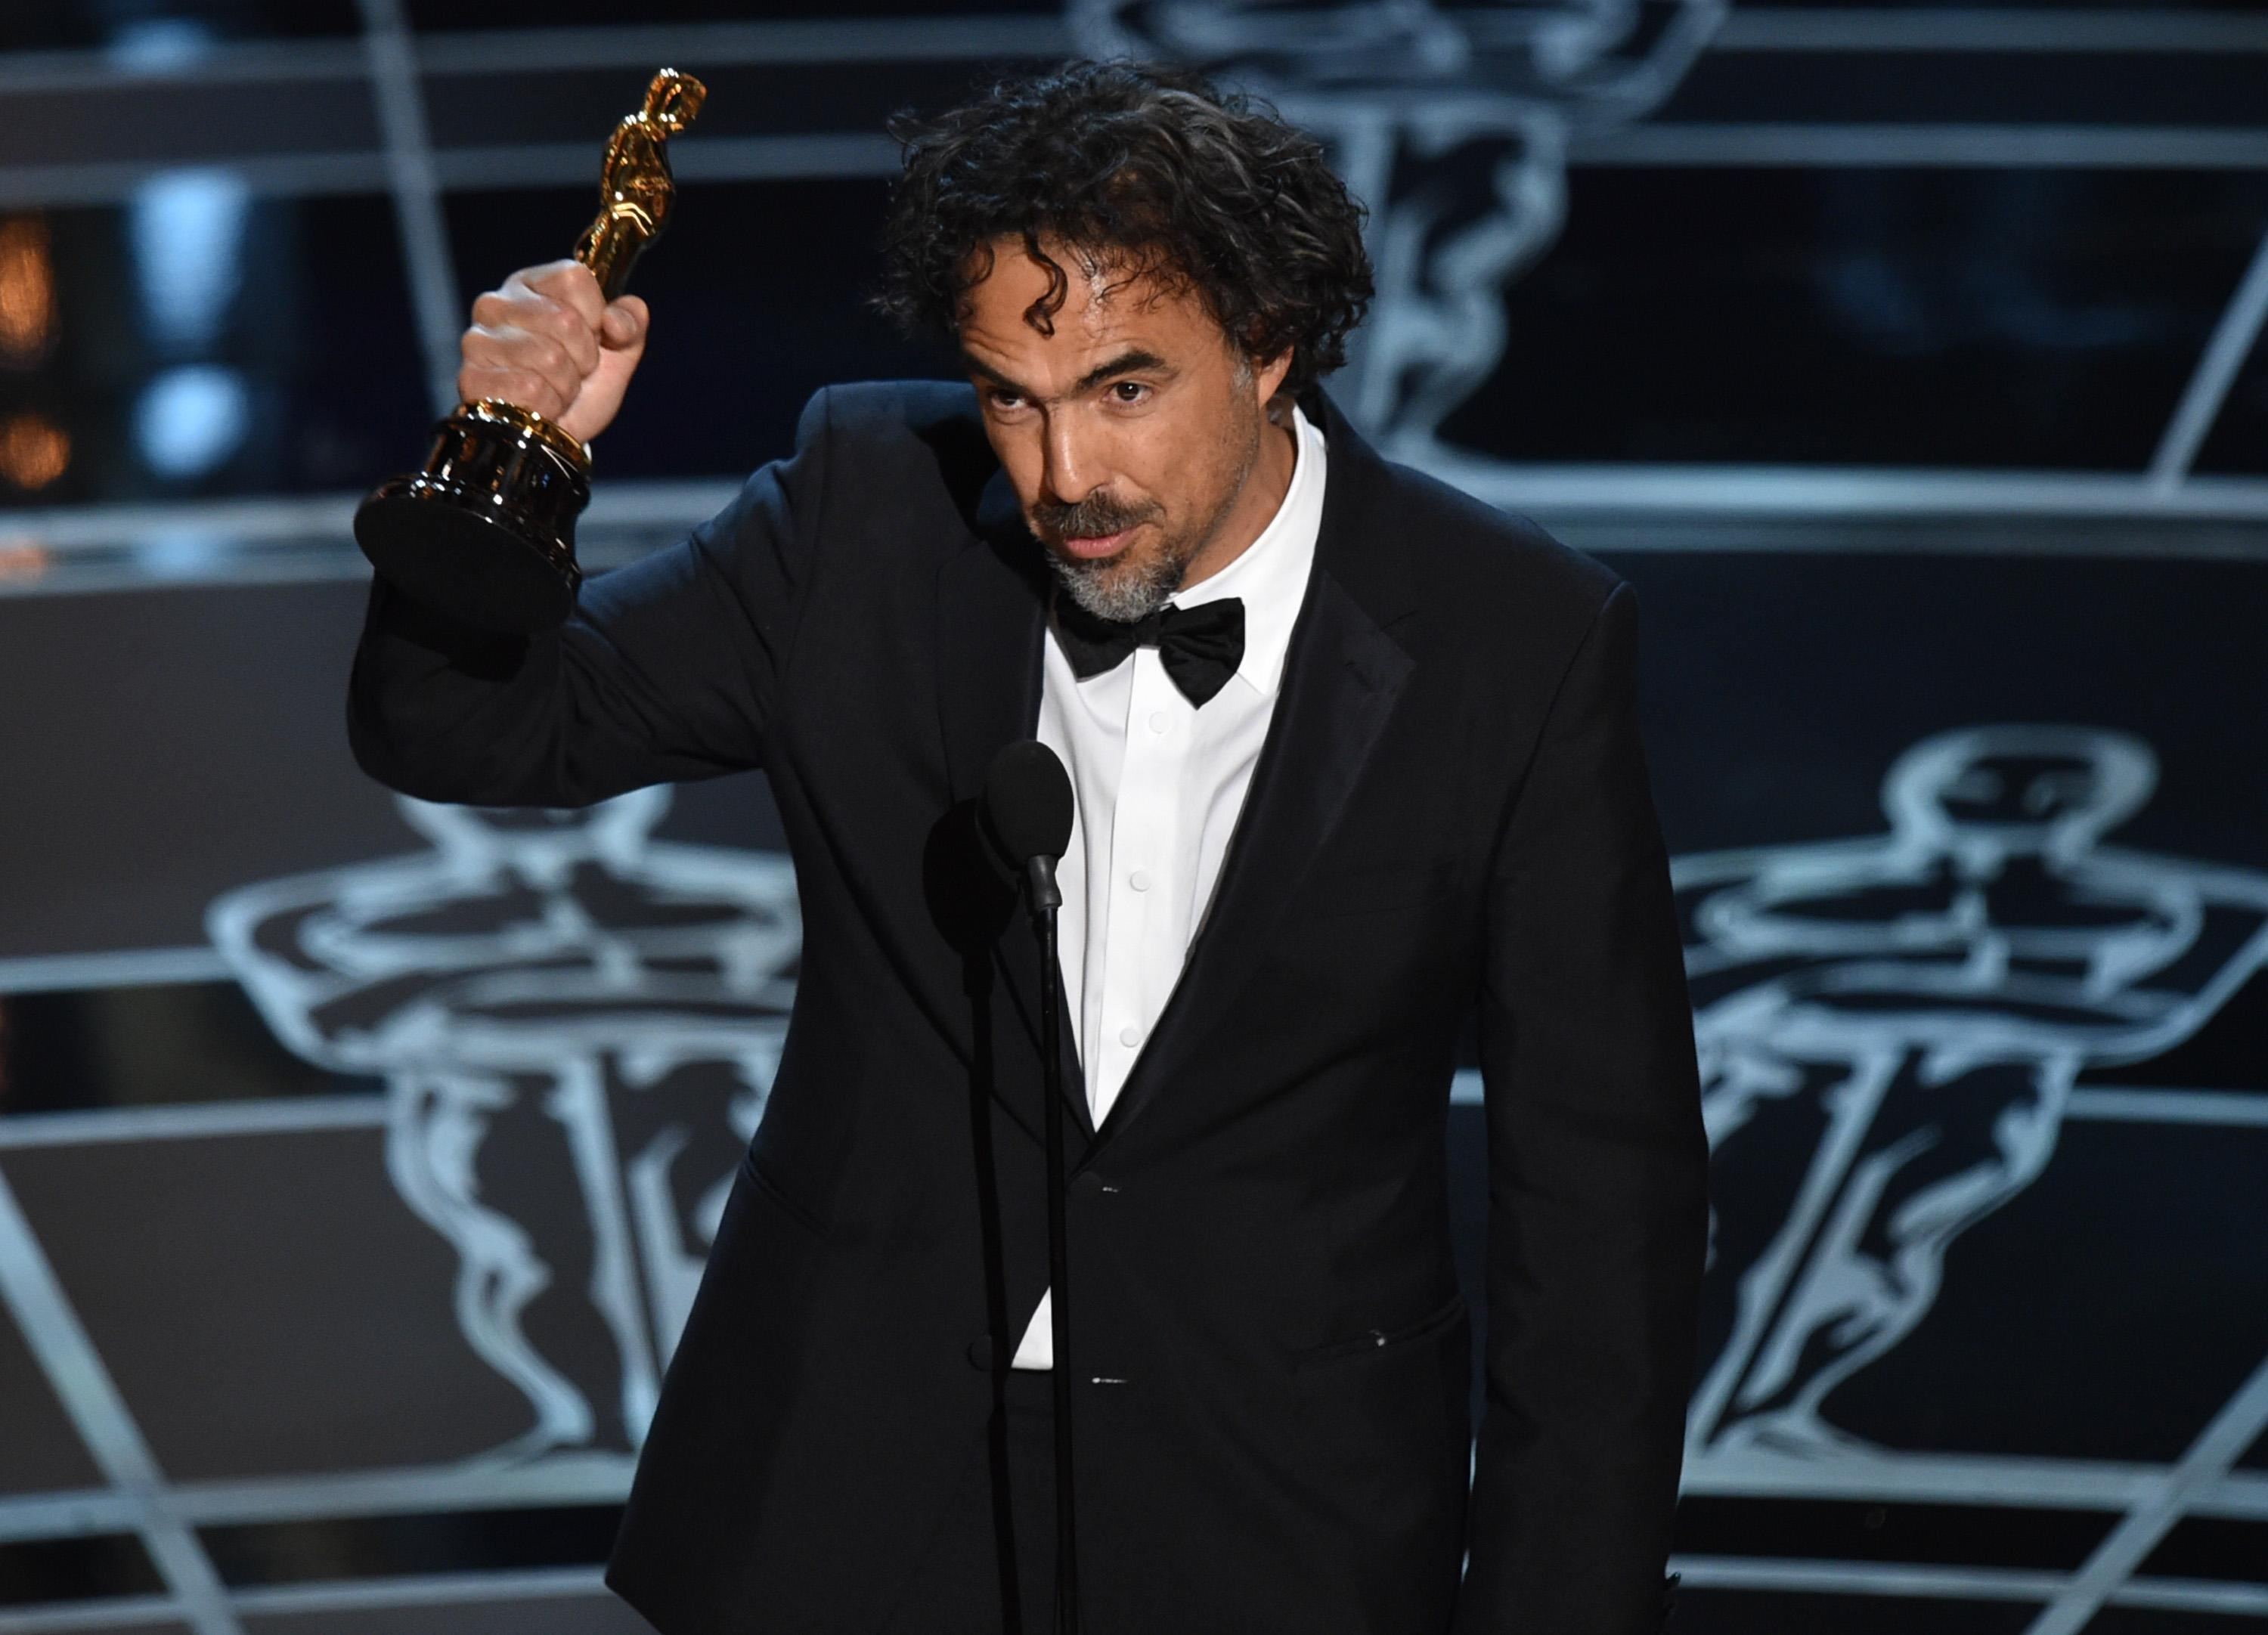 Oscars: Academy Weighing Return to Five Best Picture Nominees